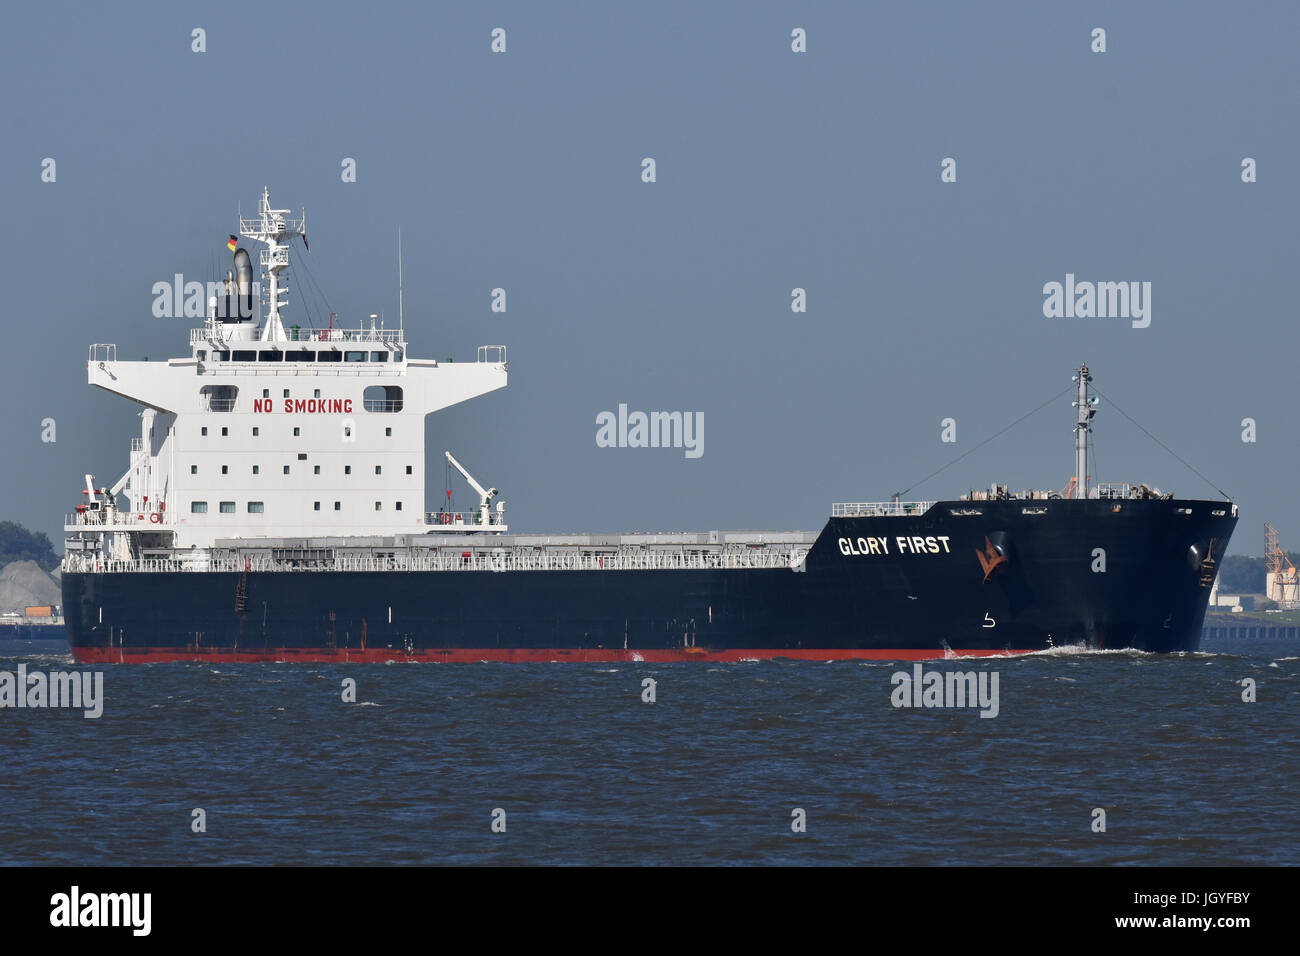 Bulkcarrier Glory First - Stock Image